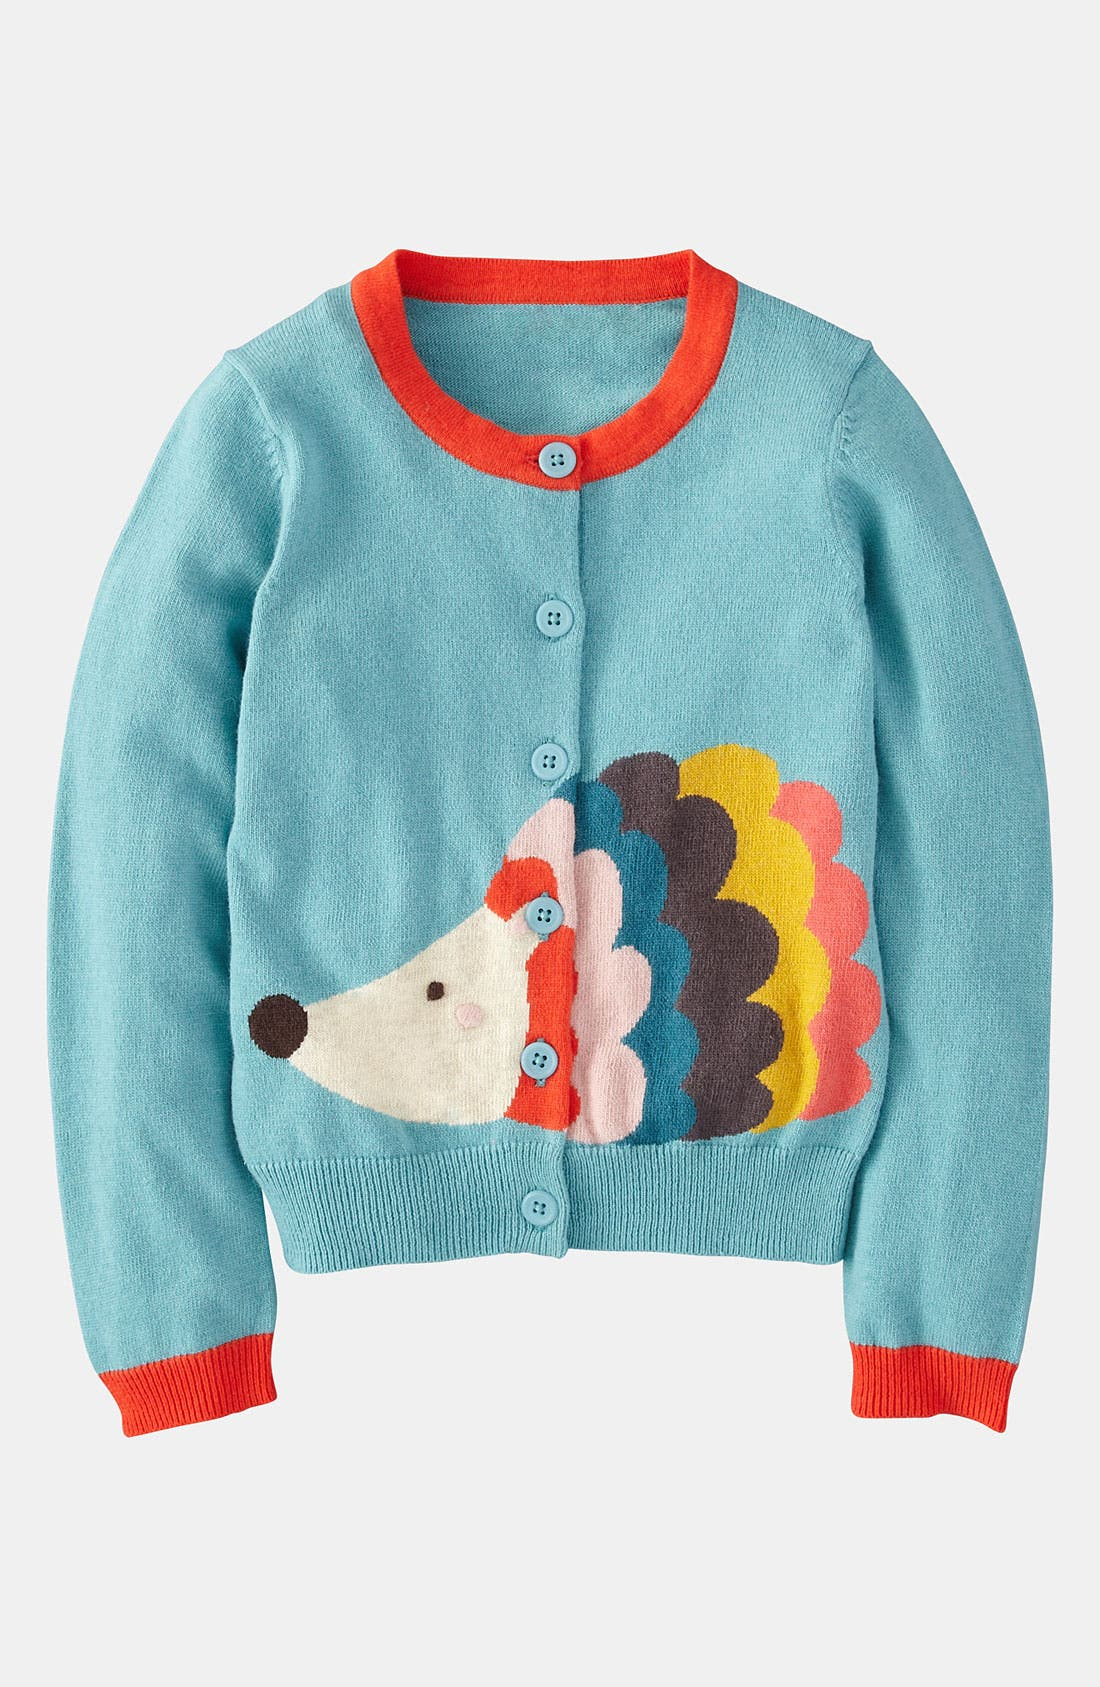 Alternate Image 1 Selected - Mini Boden 'Fun' Cardigan (Toddler)